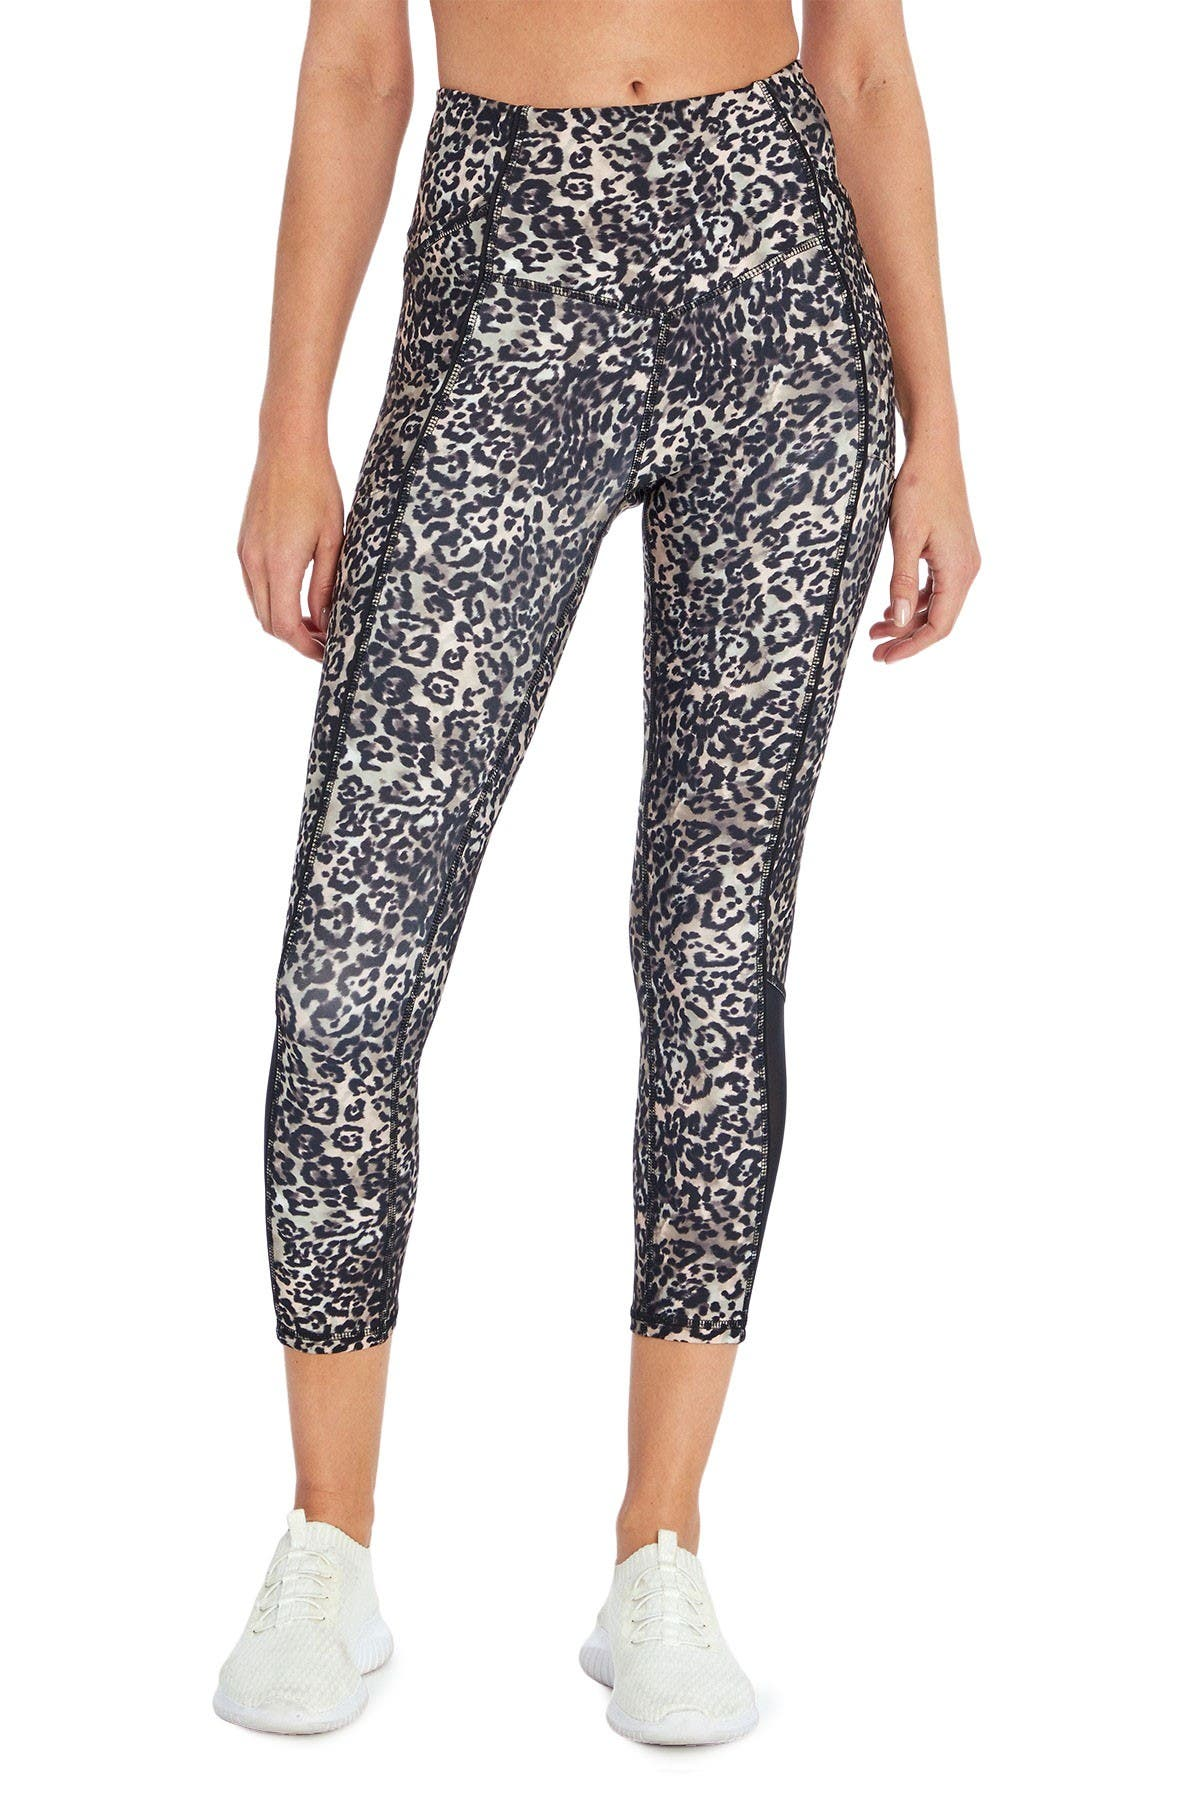 Image of Jessica Simpson Ace Printed High Waisted Capri Leggings